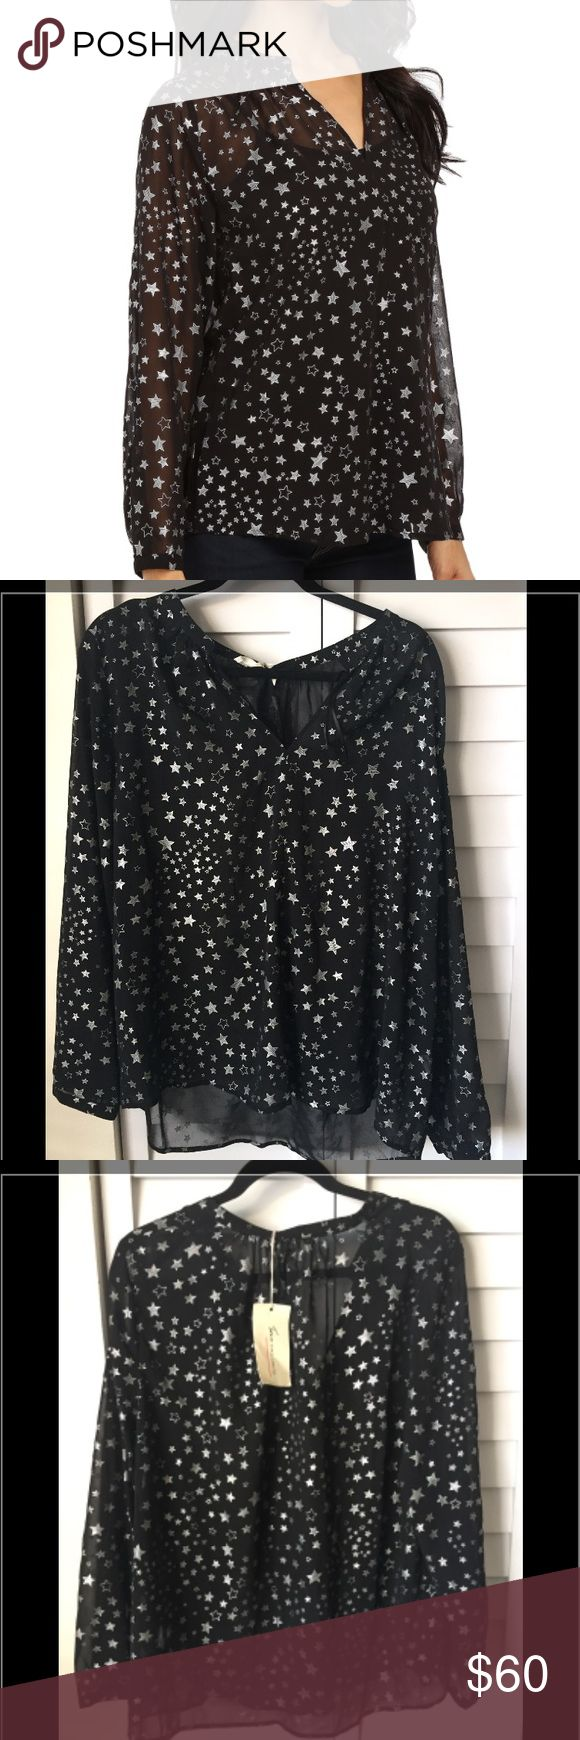 Vince black Star printed see through blouse Vince black Star printed see through blouse. Size large. New with tags Vince Tops Blouses